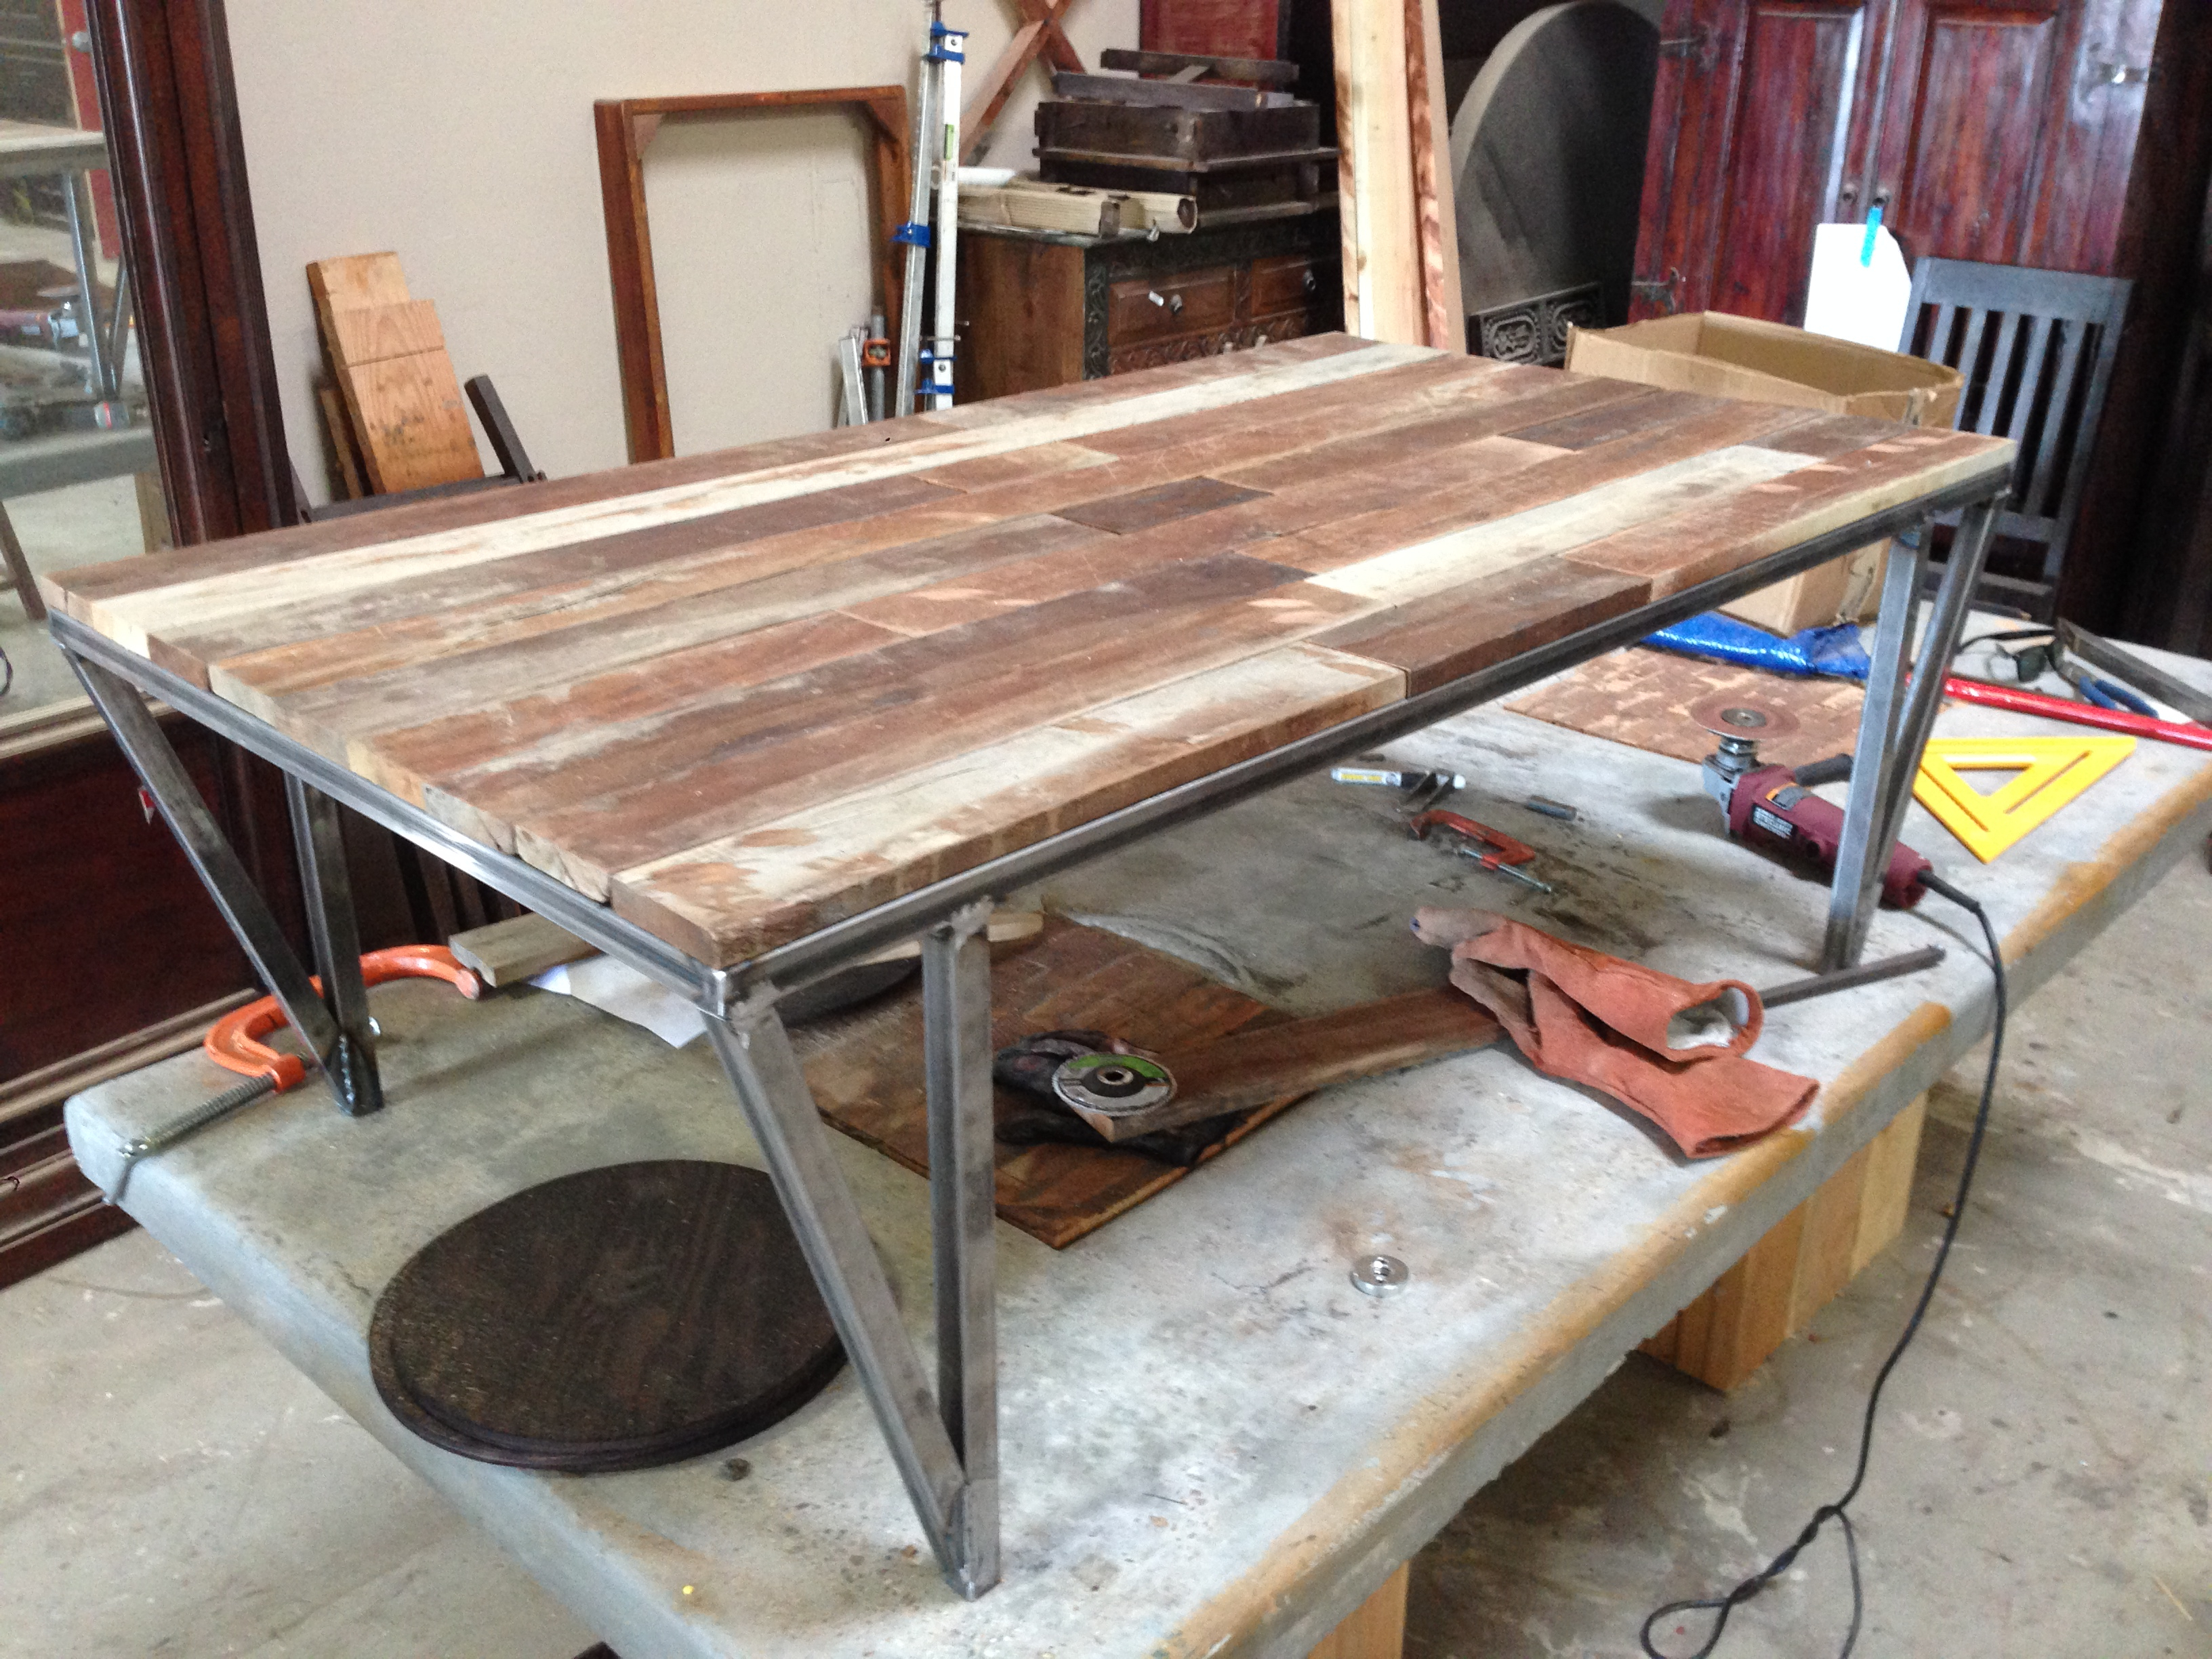 Custom Metal And Wood Furniture At San Diego Rustic Furniture – Made Inside Most Up To Date Iron Wood Coffee Tables With Wheels (Gallery 11 of 20)